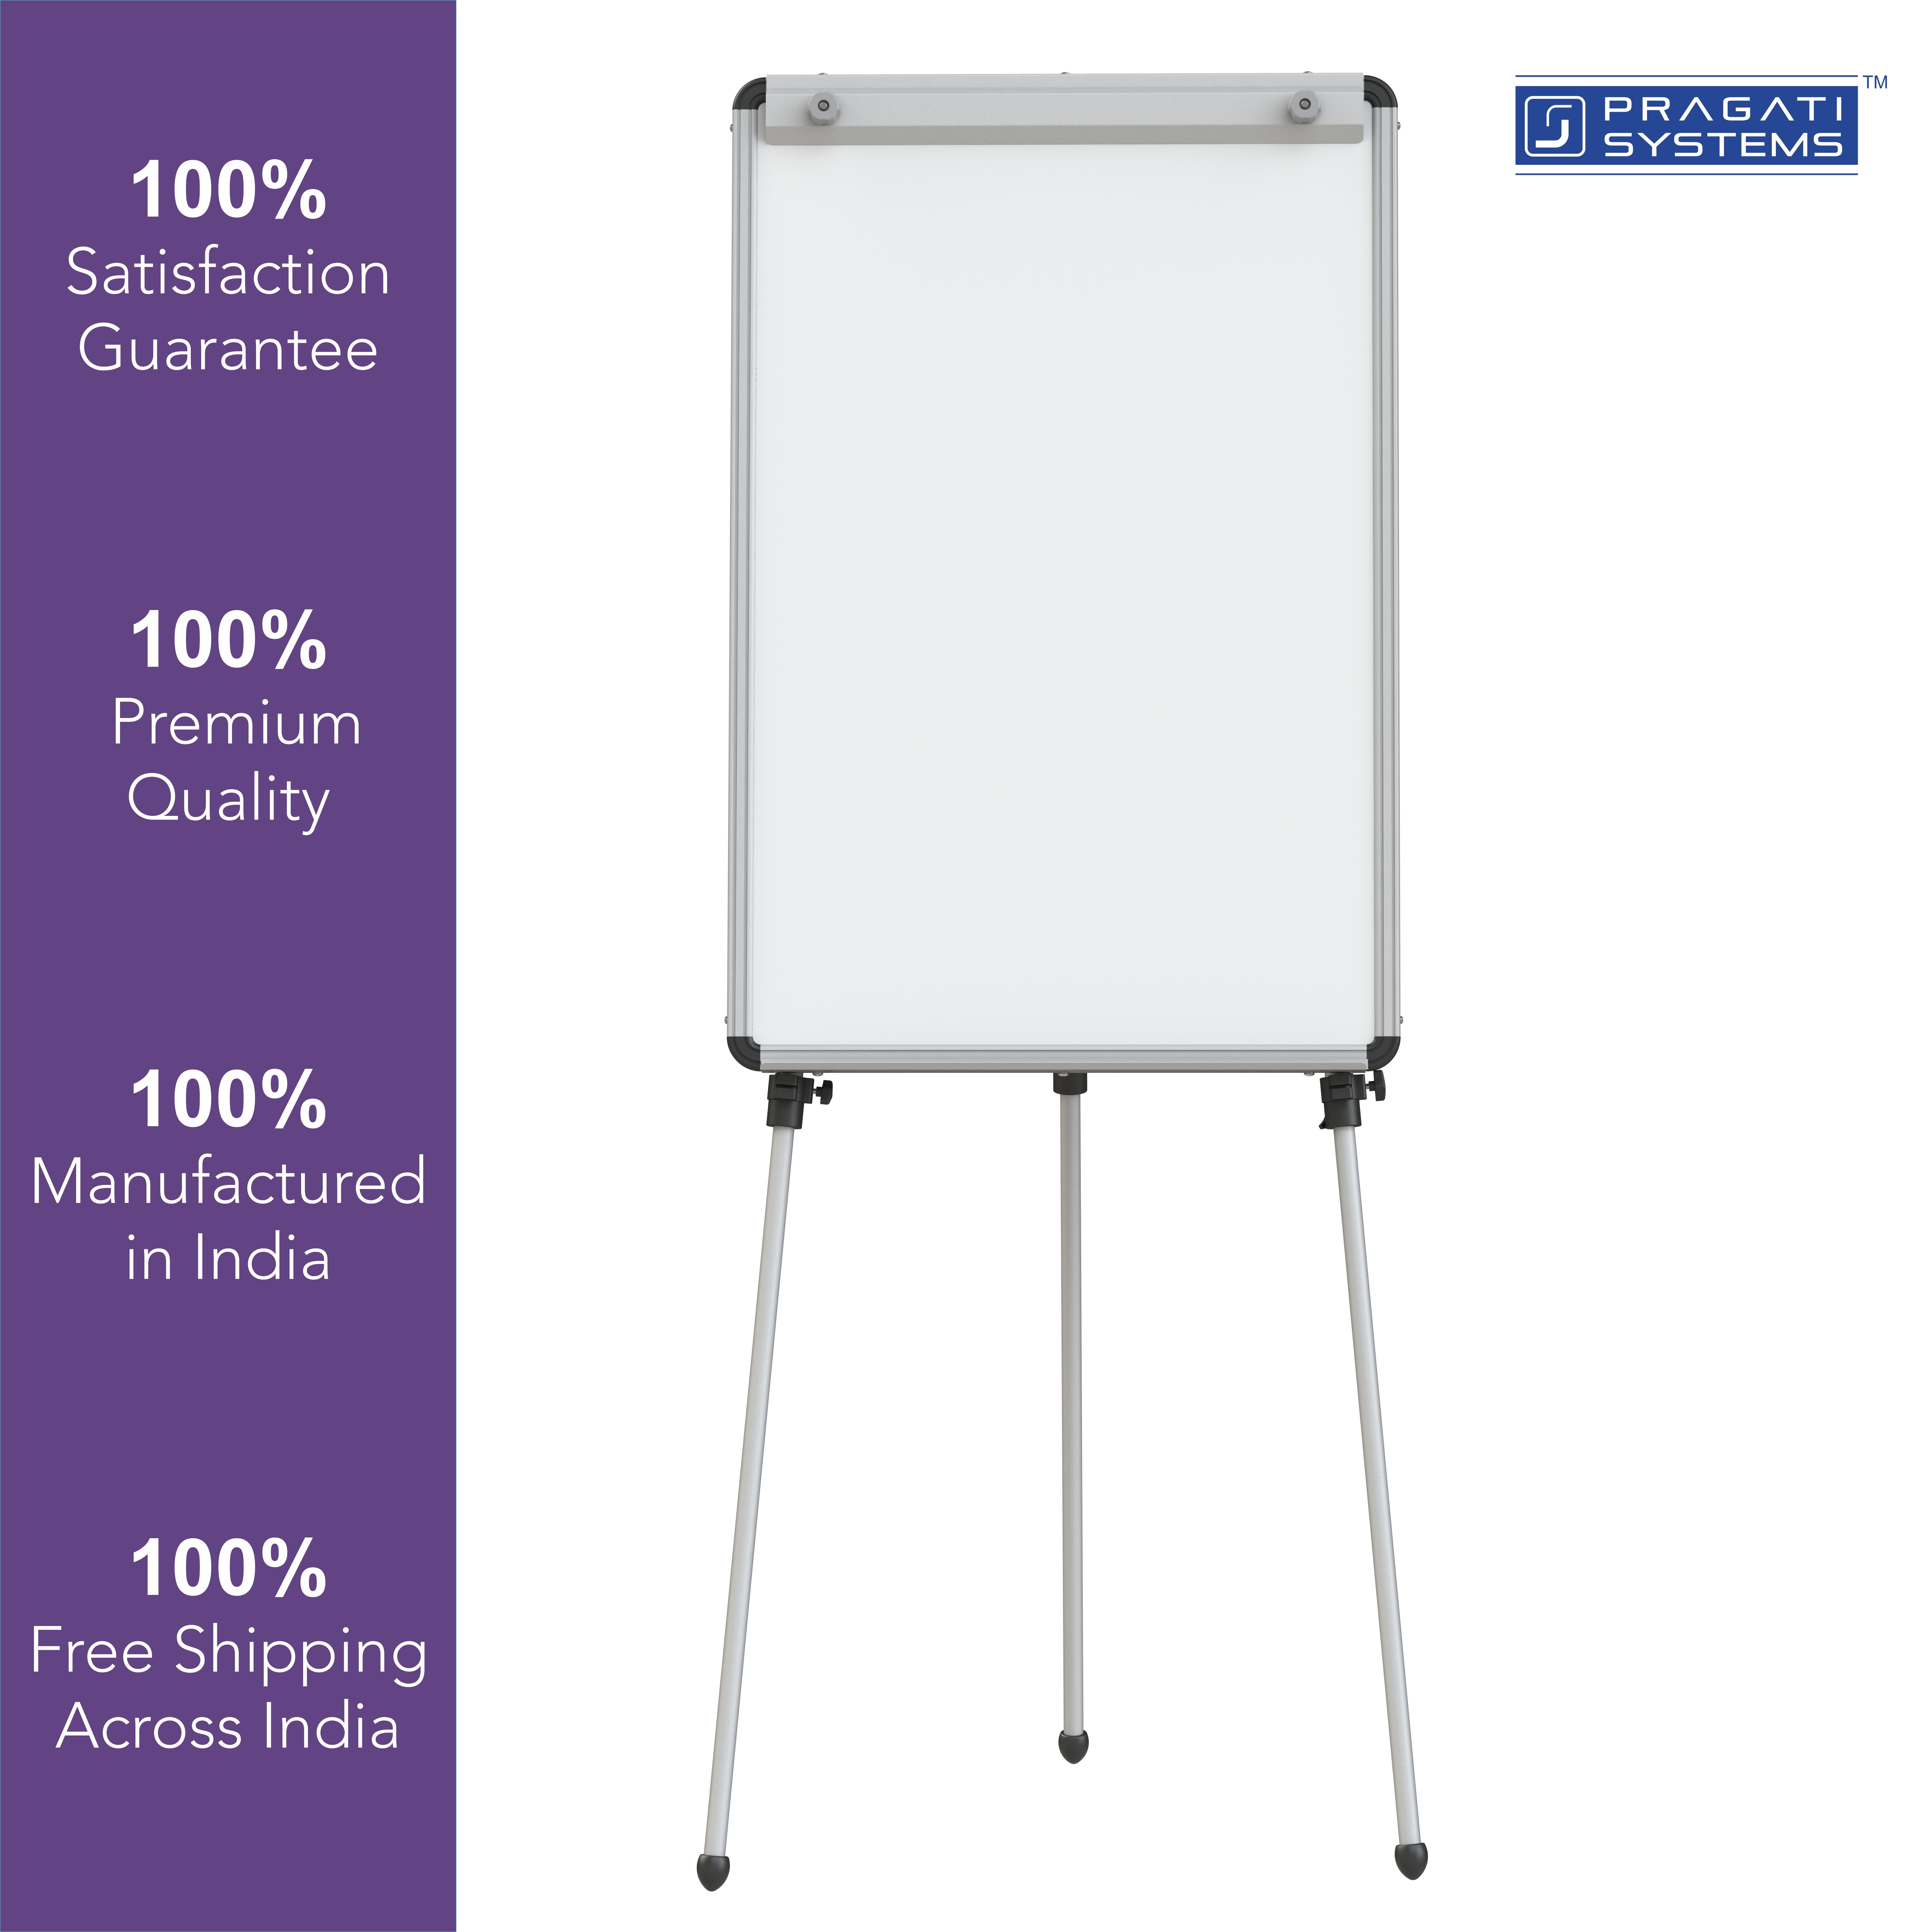 Flipchart Easel Stand with 2x3 Prima RM Whiteboard